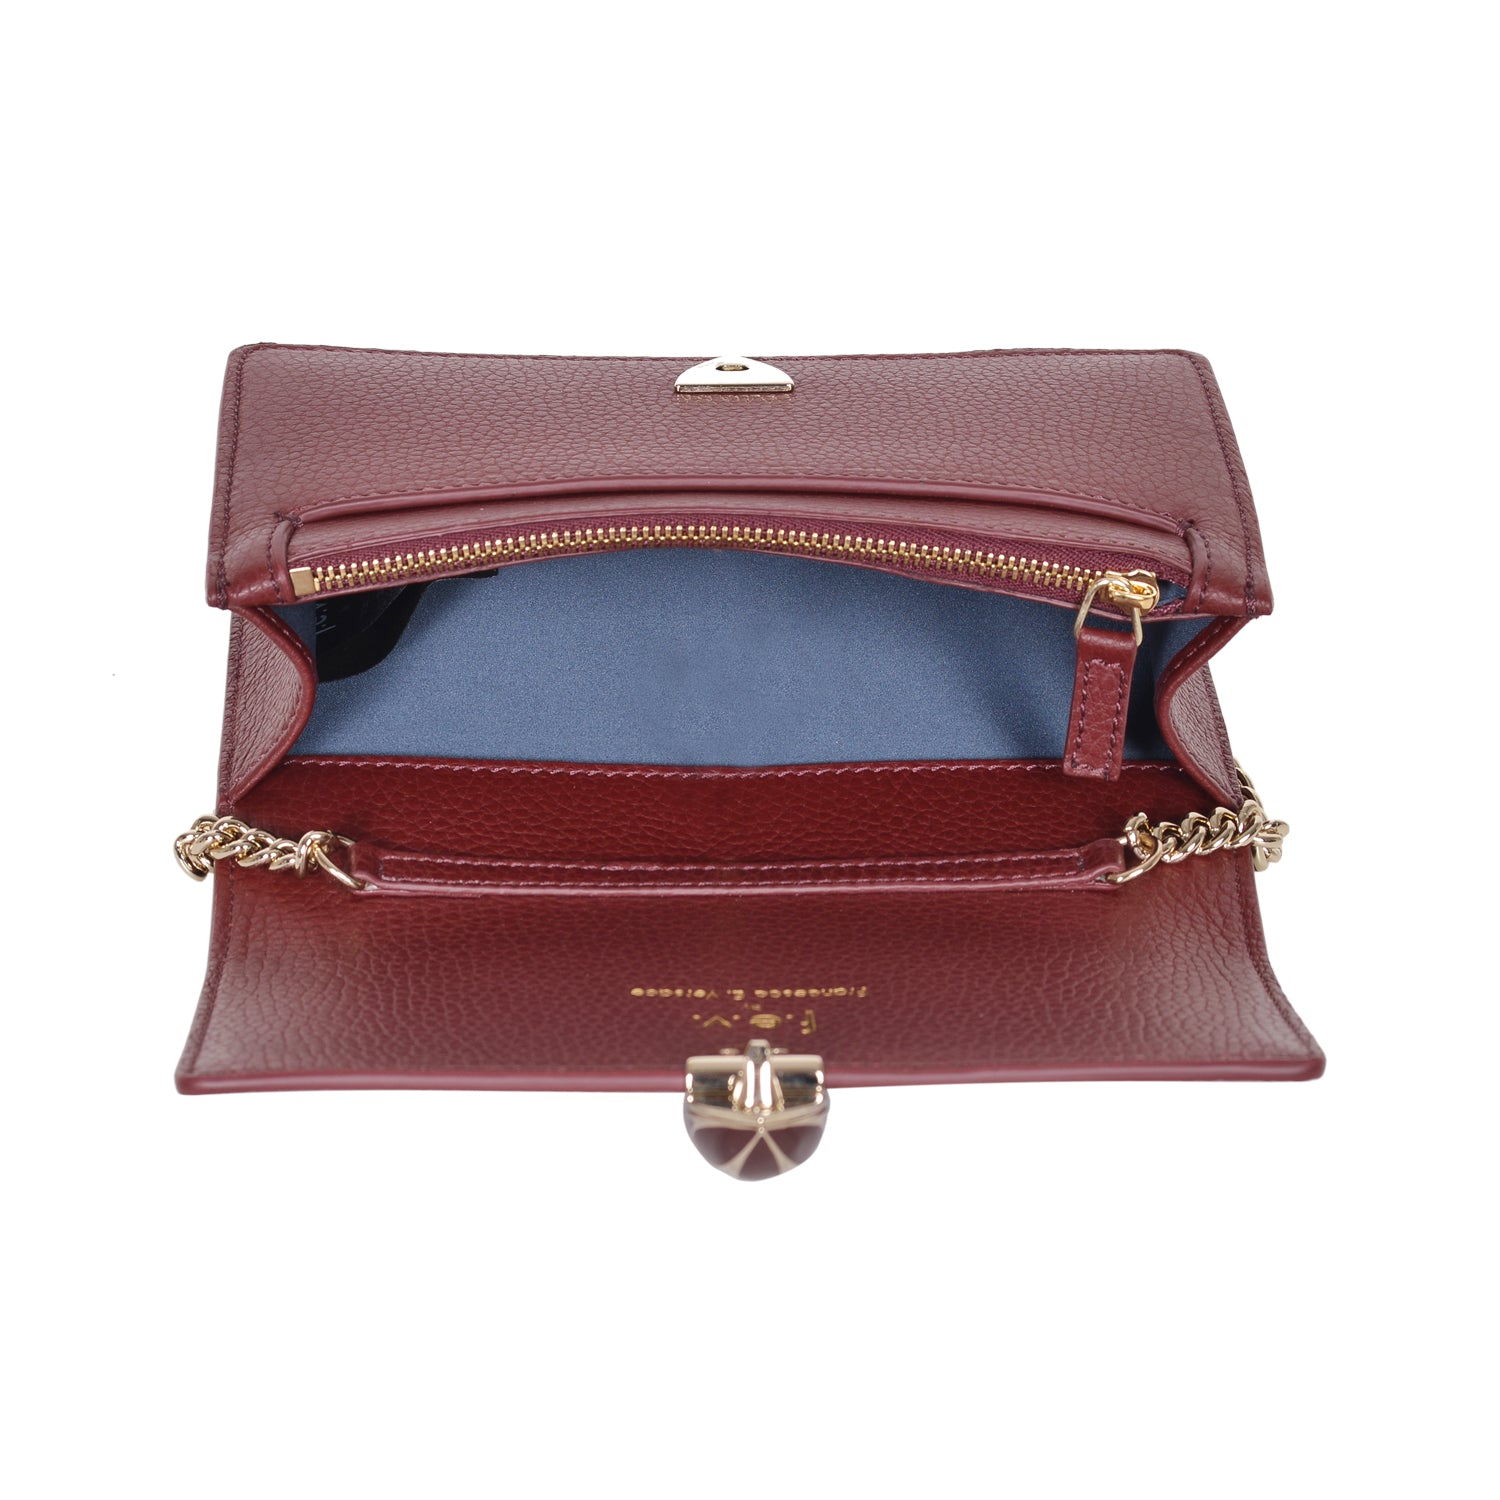 F.E.V  WOMEN'S BORDEAUX  ST. MORTIZ CLUTCH